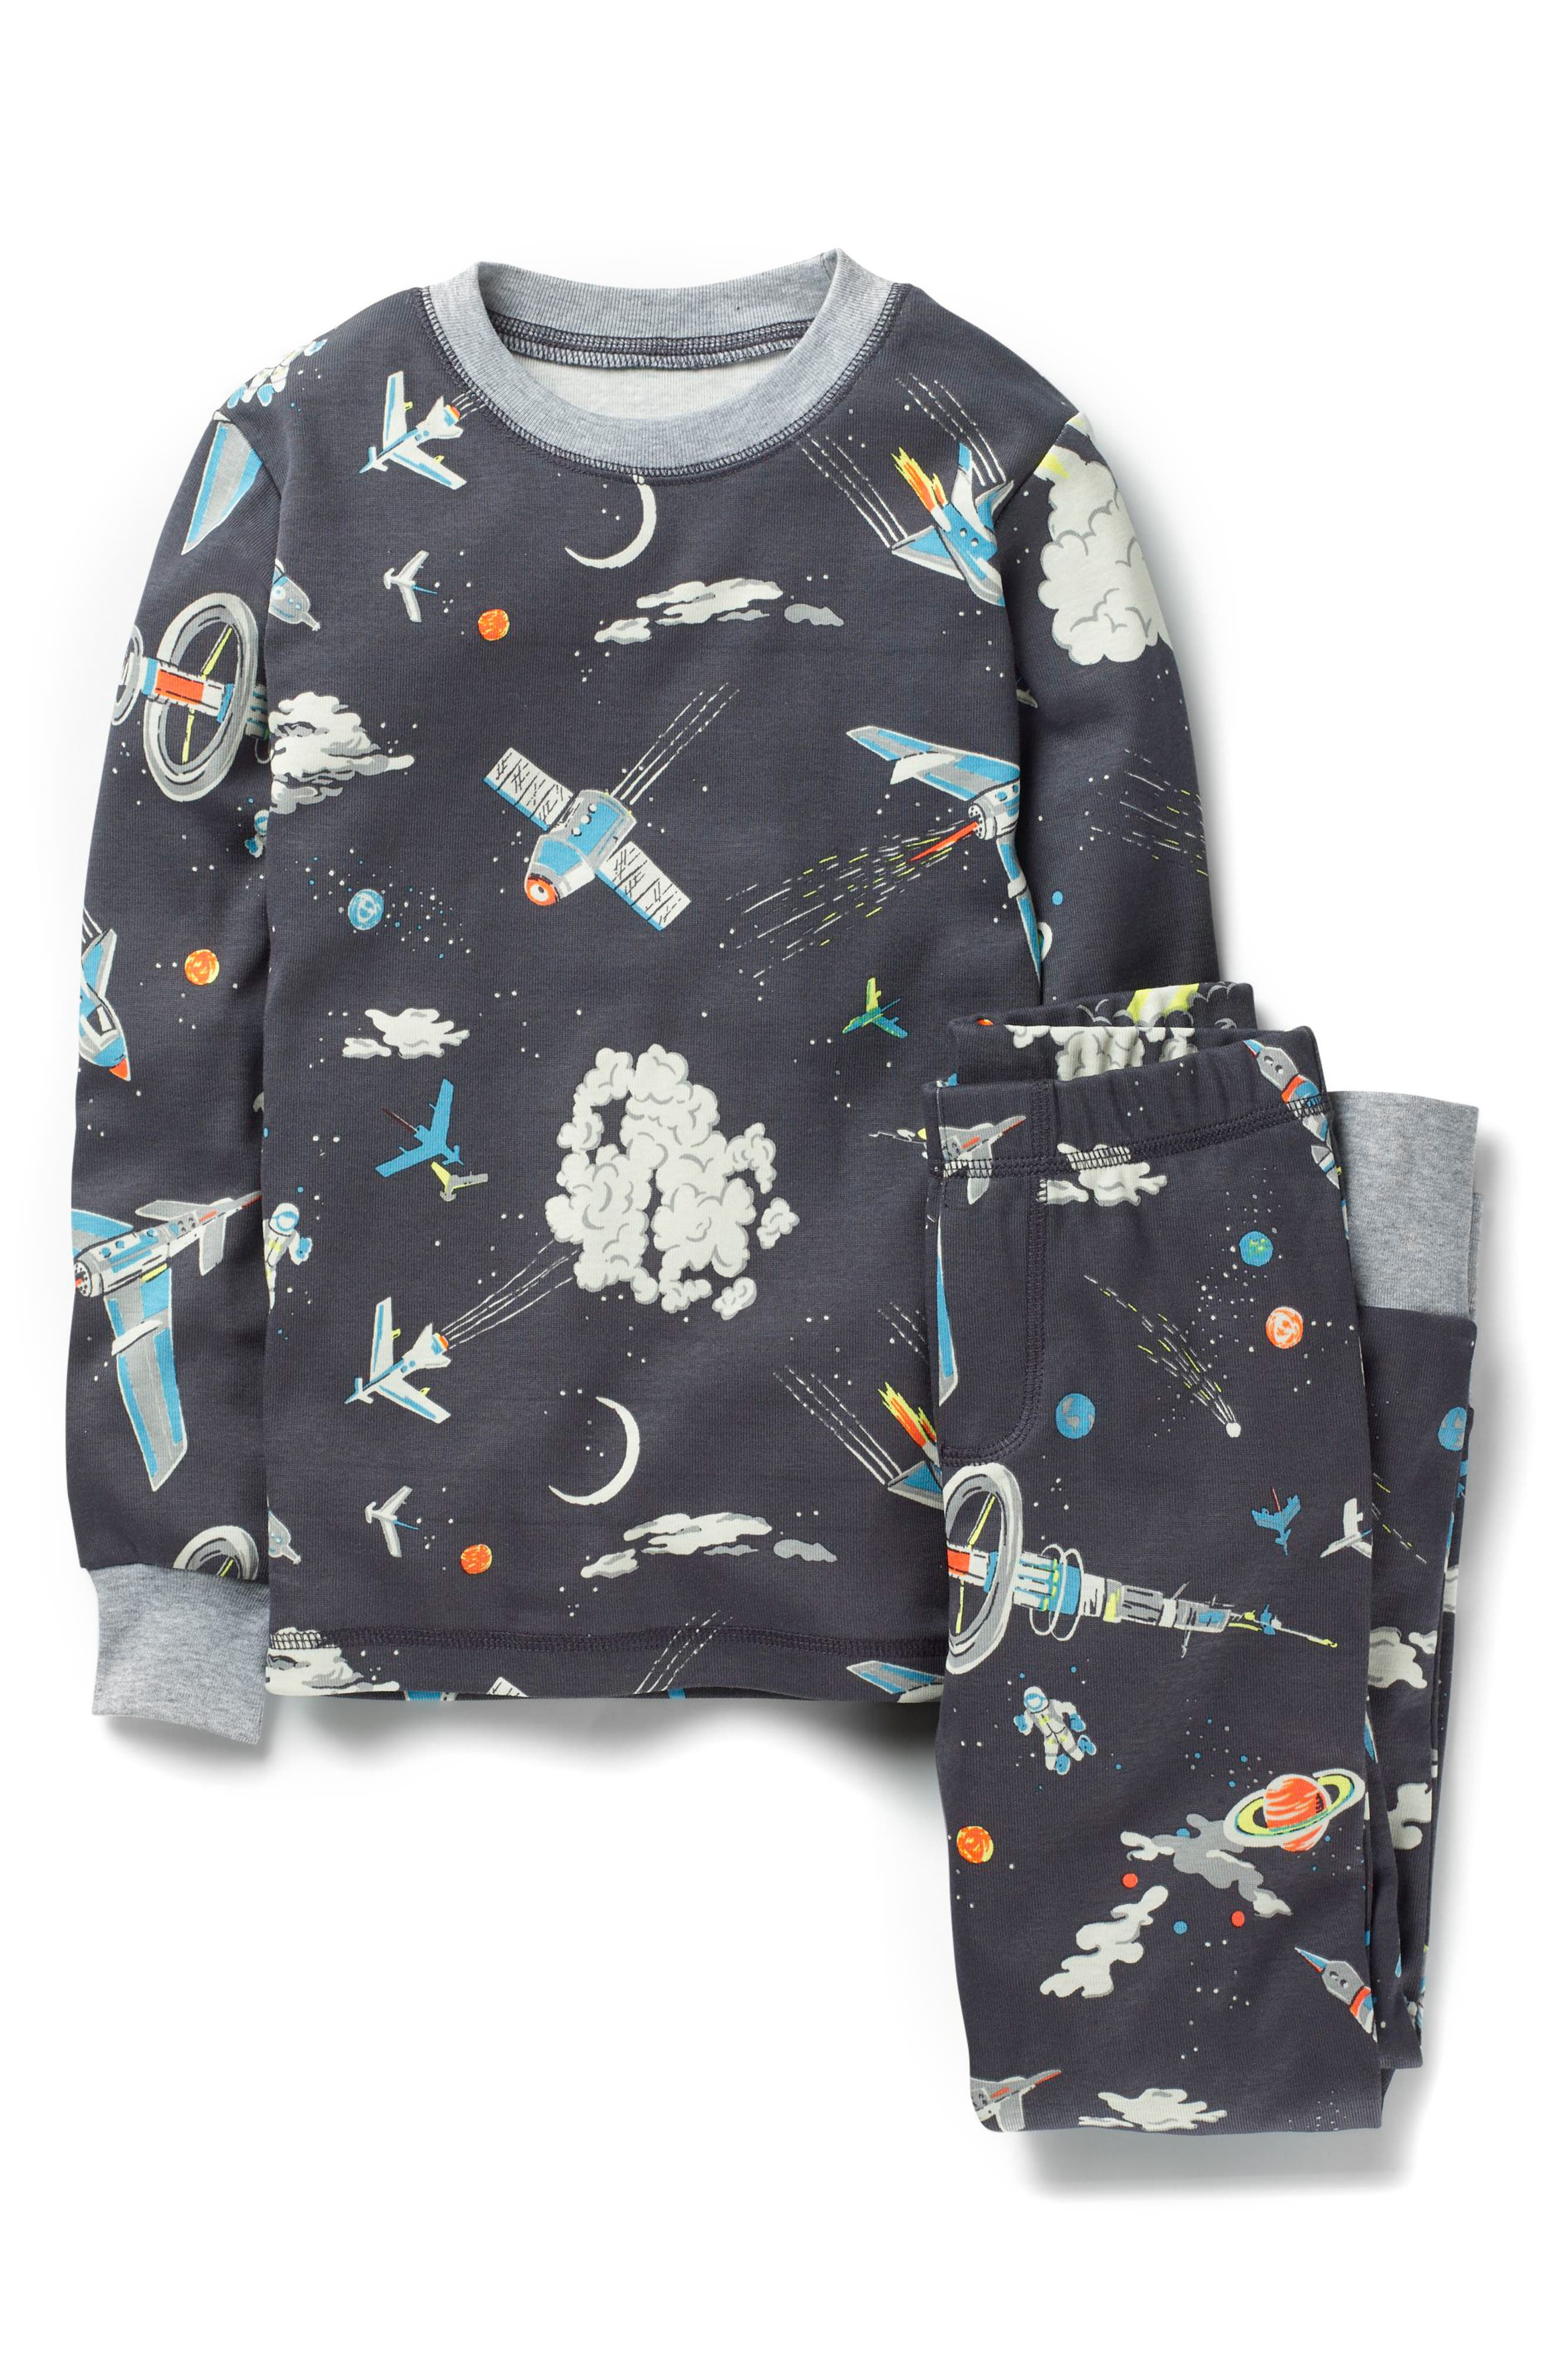 Glow in the Dark Fitted Two-Piece Pajamas,                         Main,                         color, Asphalt Gray